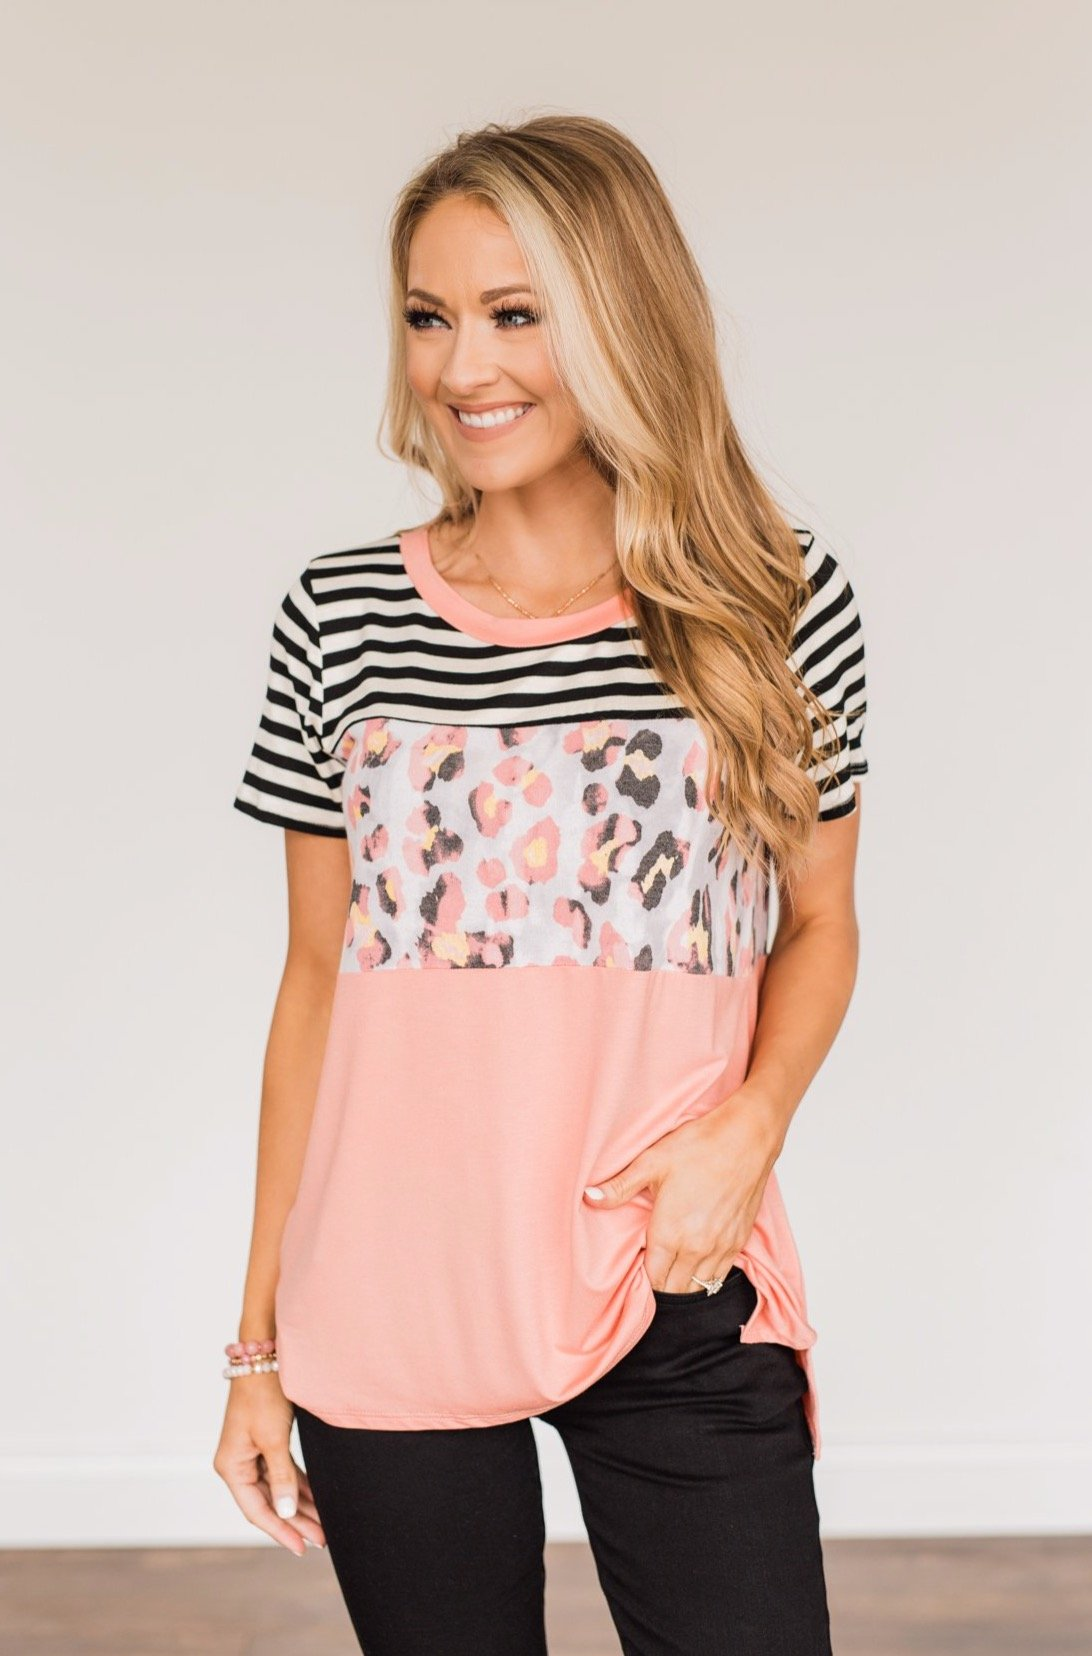 Always Alluring Color Block Top- Soft Coral, Ivory, & Black